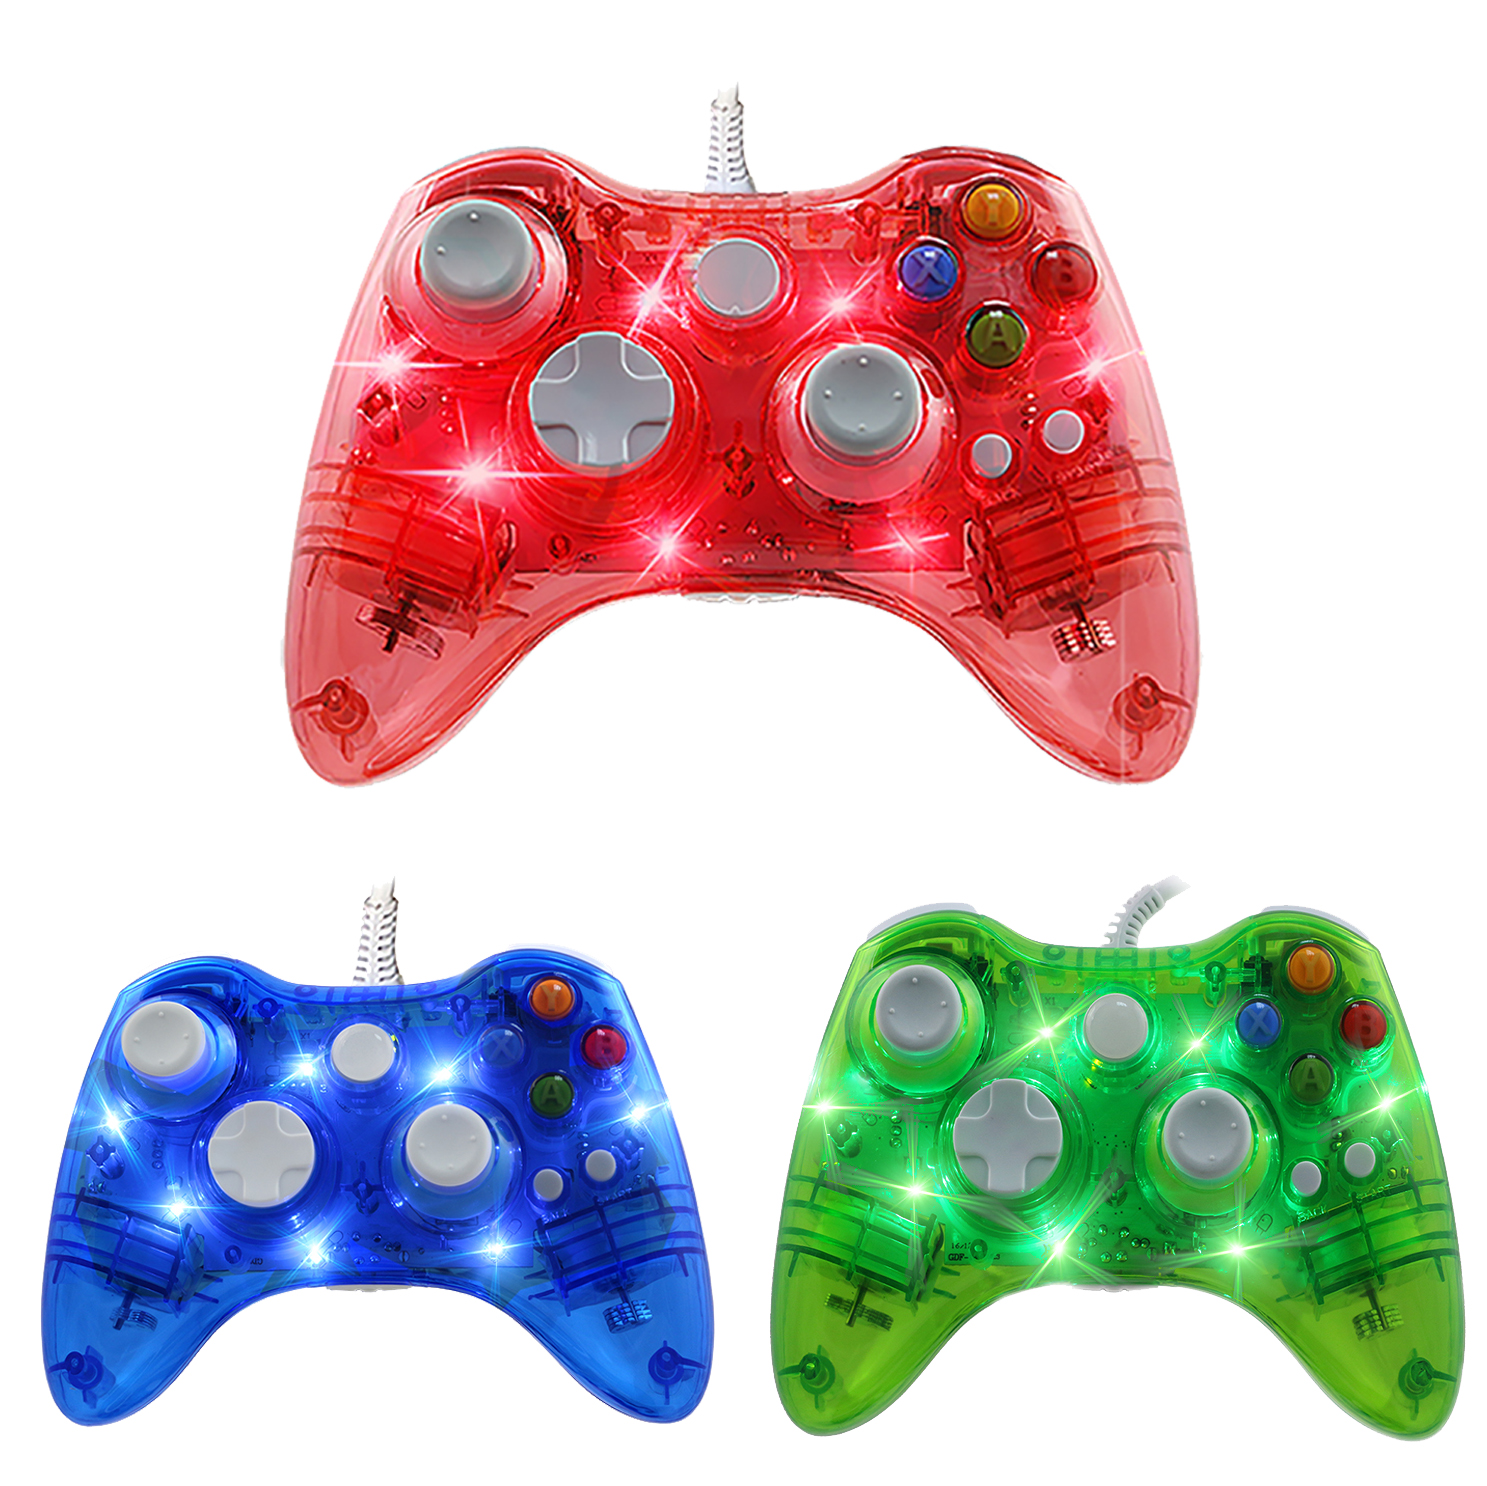 ViGRAND USB Wired Joypad Controller Joystick for Microsoft Xbox 360 Gamepad with PC for Windows 7 8 10 for Xbox360 Gamepads in Gamepads from Consumer Electronics